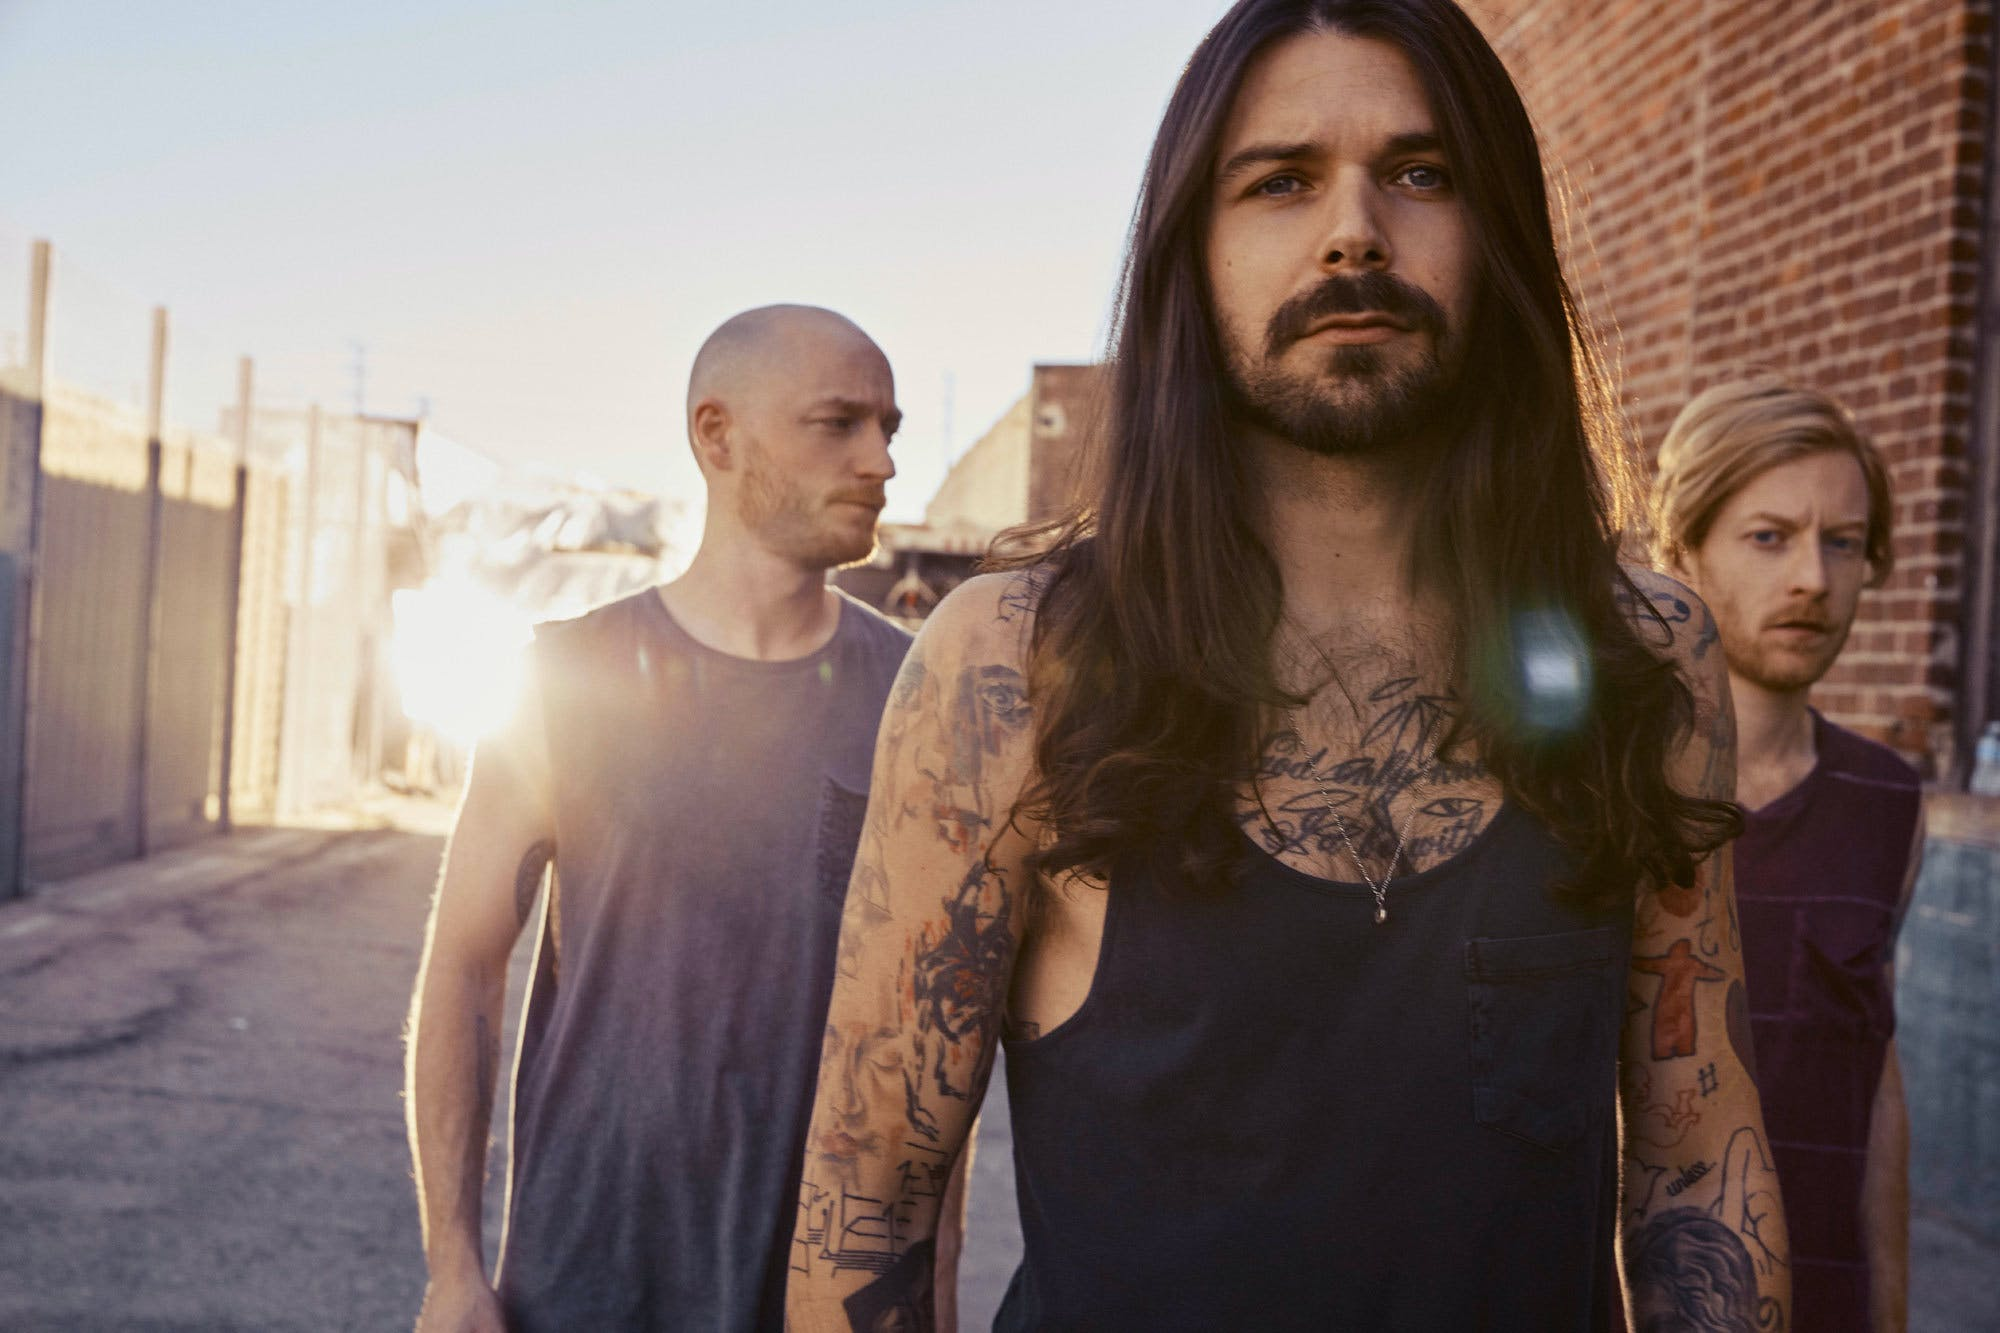 Listen To Every Biffy Clyro Song At The Same Time And Lose Your Mind